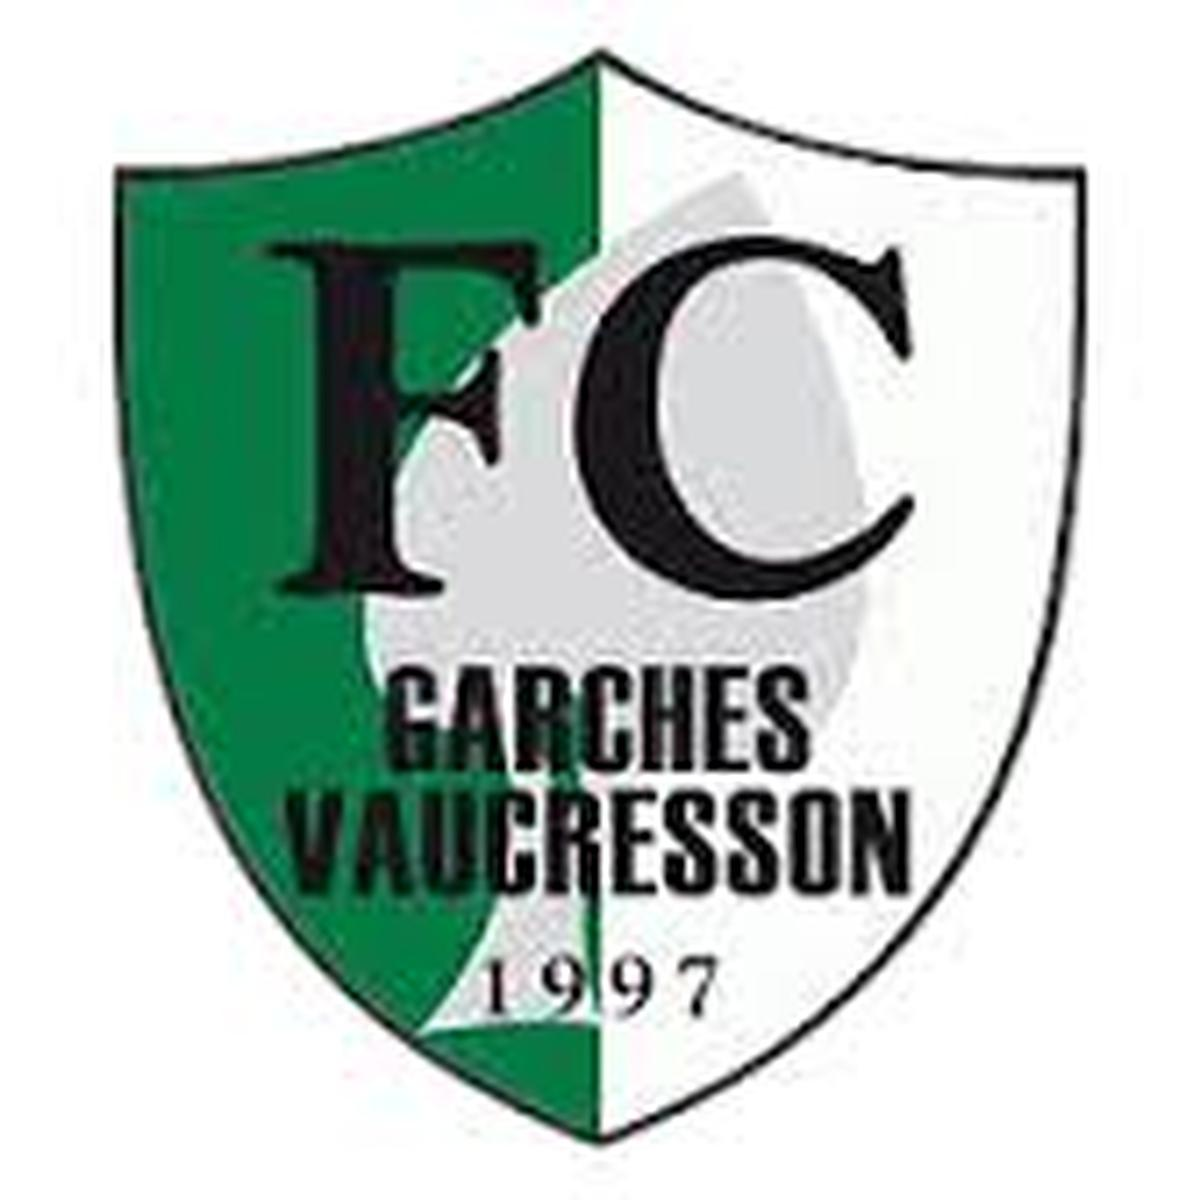 FC GARCHES VAUCRESSON 2